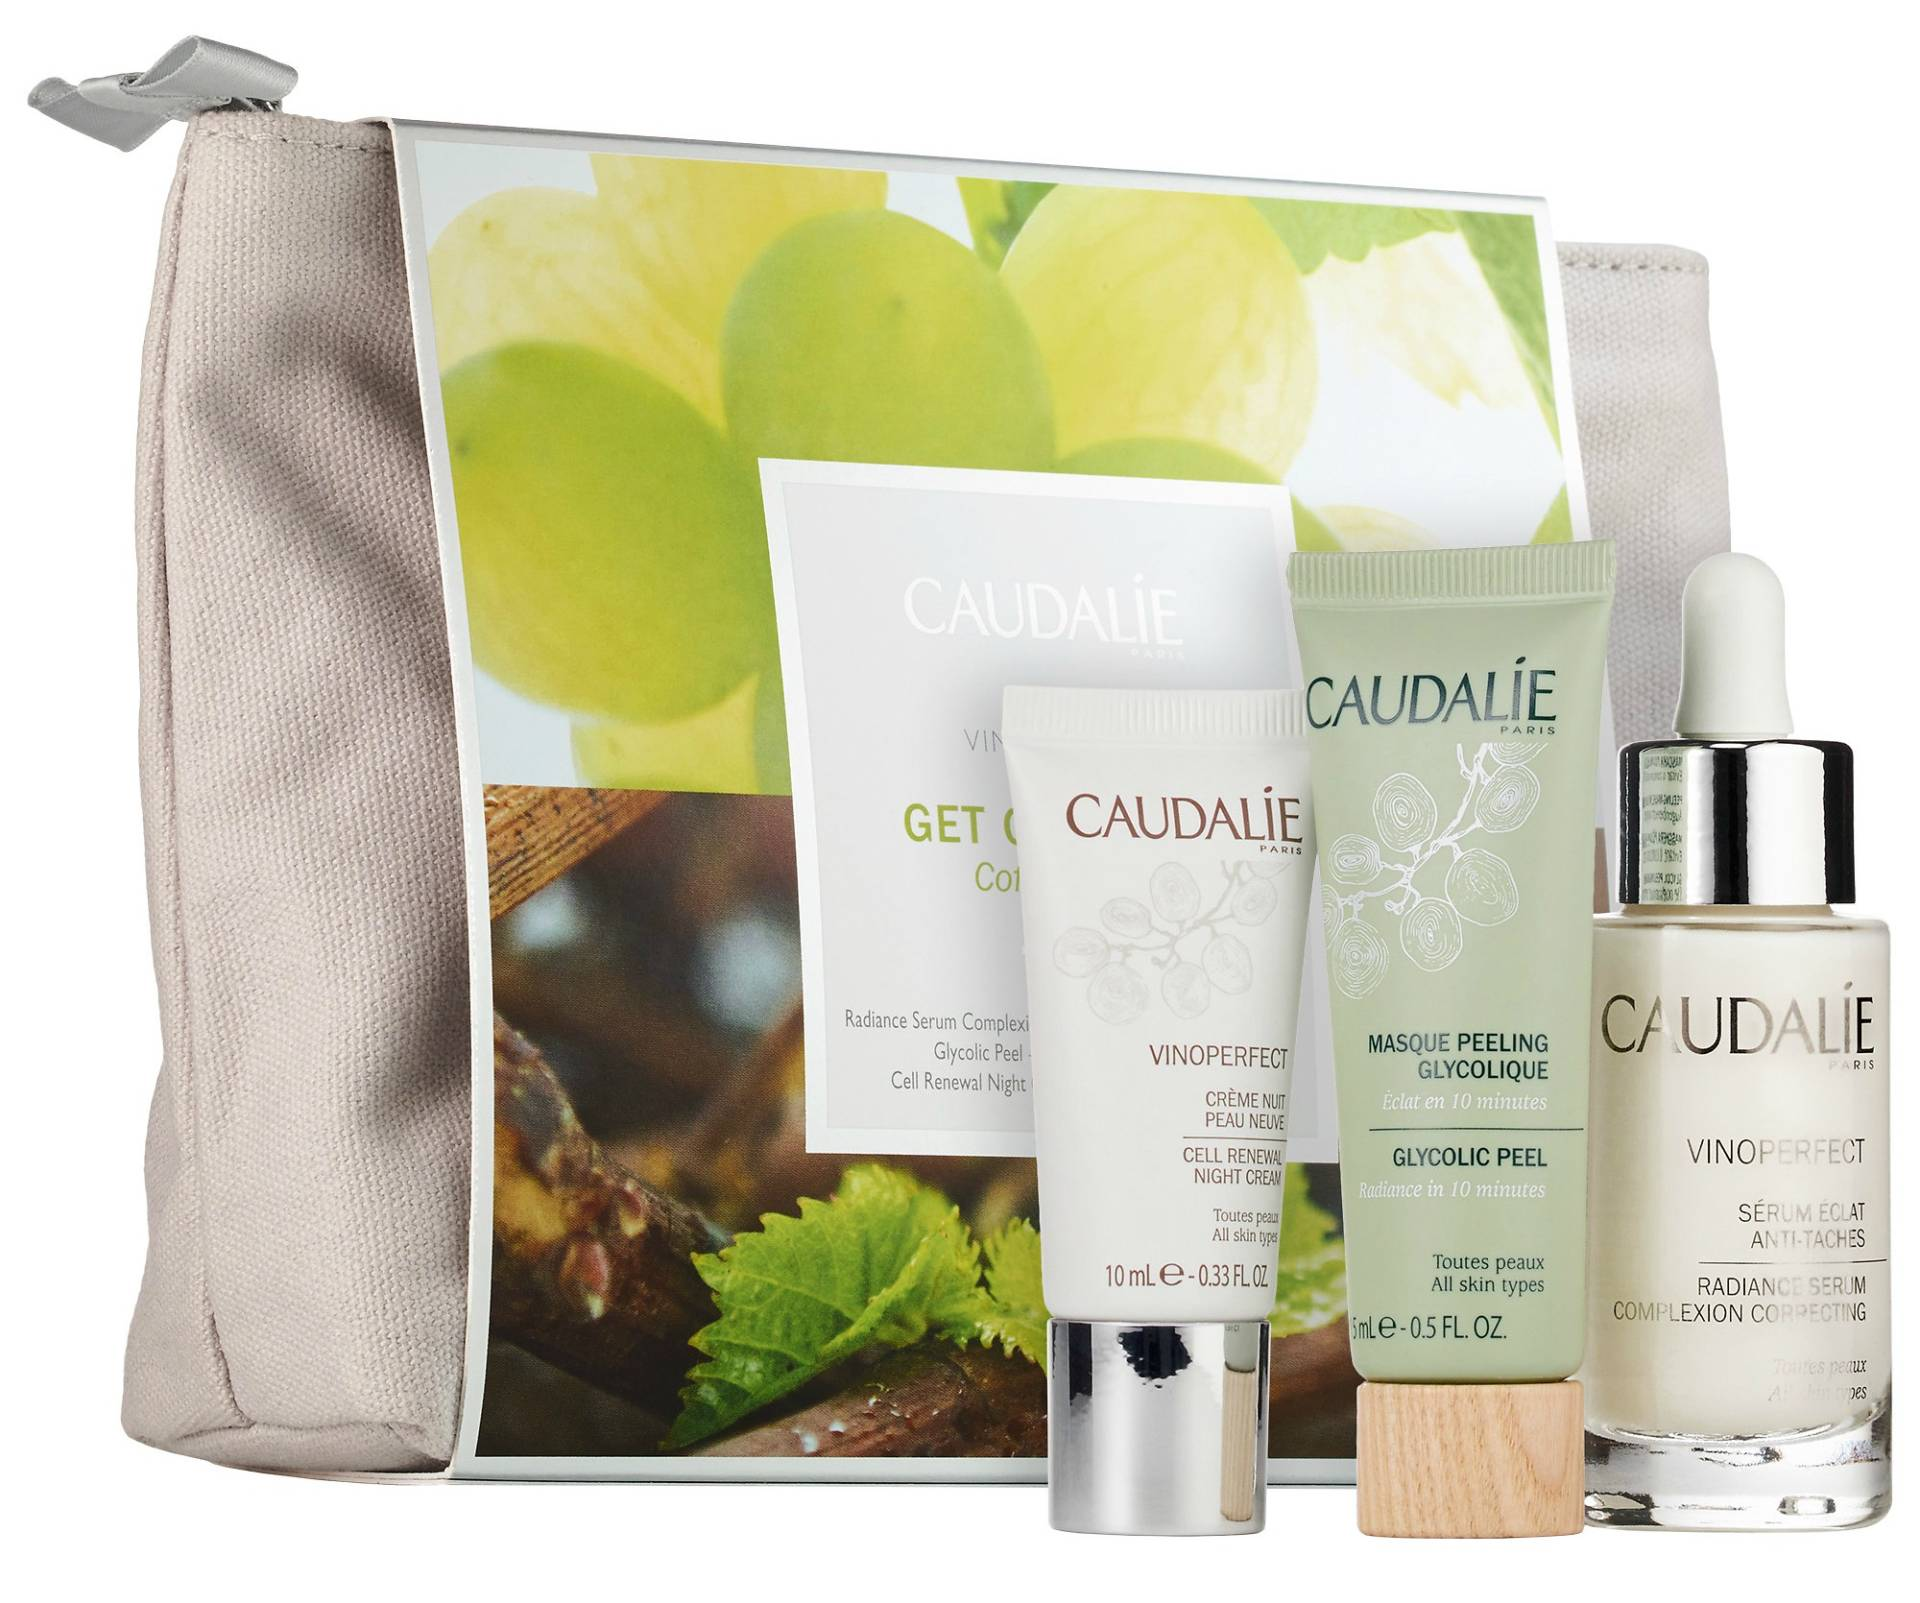 Caudalie Vinoperfect Get Glowing Set mothers day gift guide inhautepursuit review